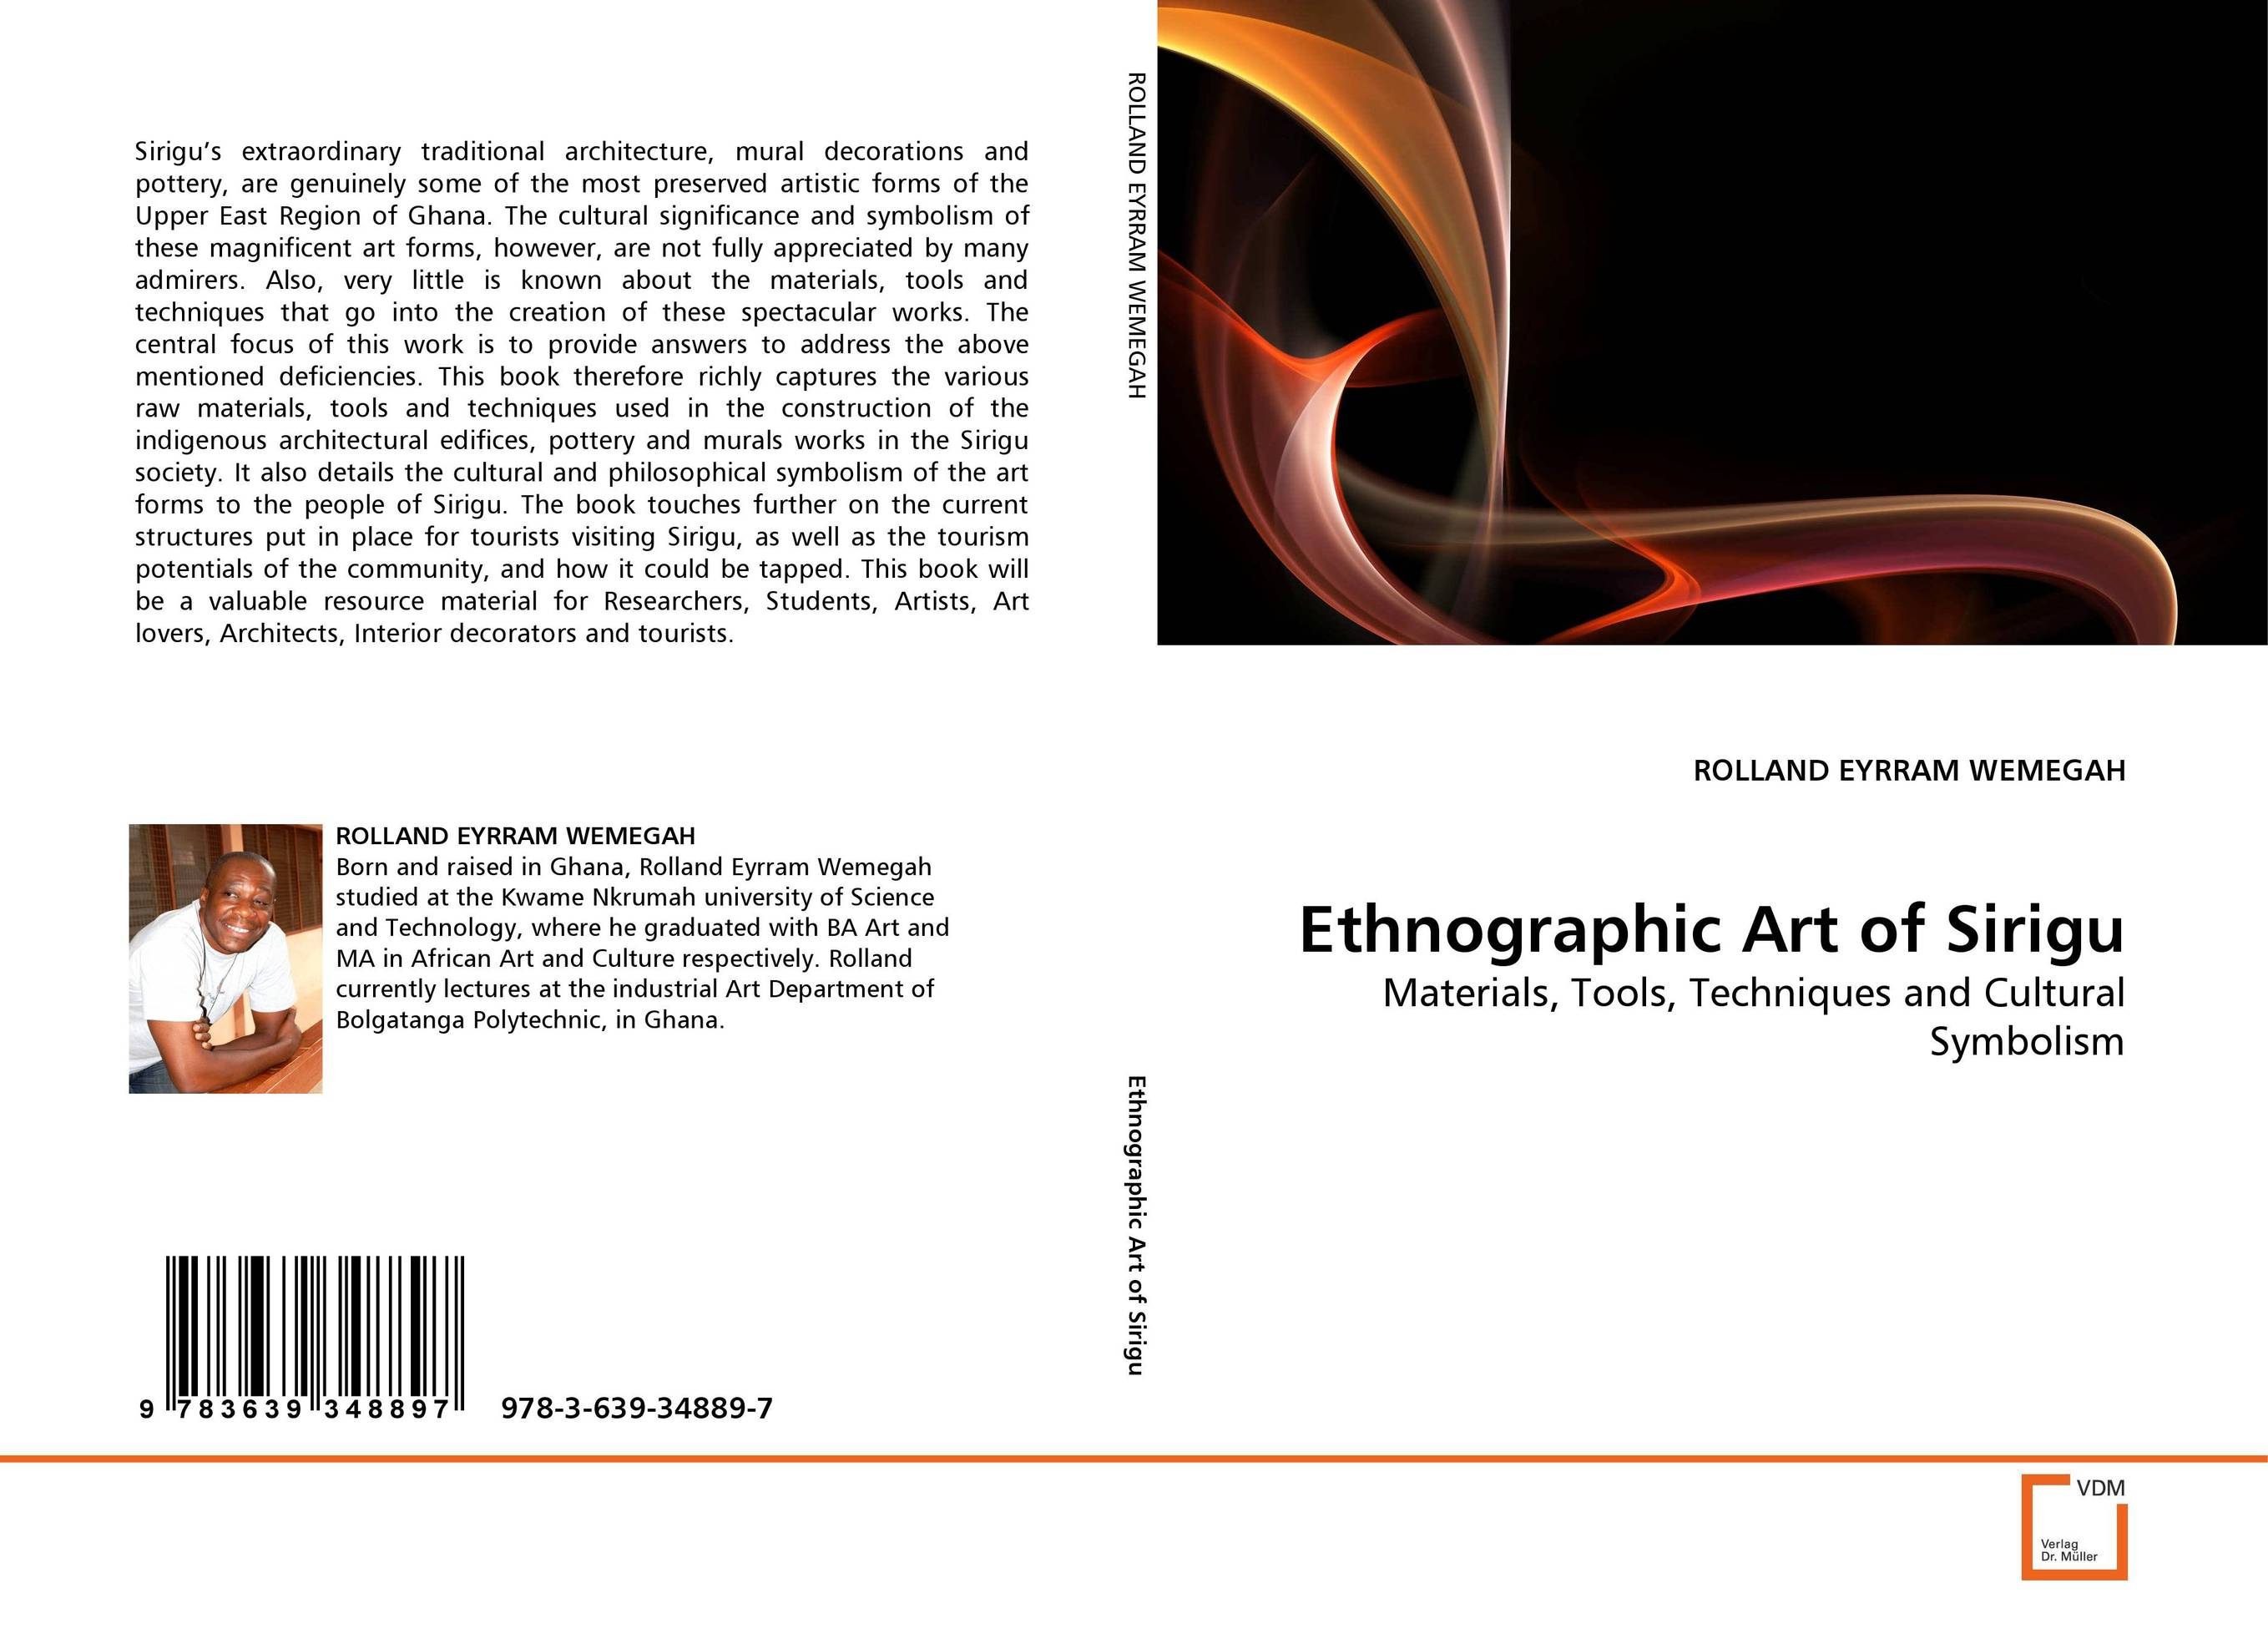 Ethnographic Art of Sirigu titles and forms of address